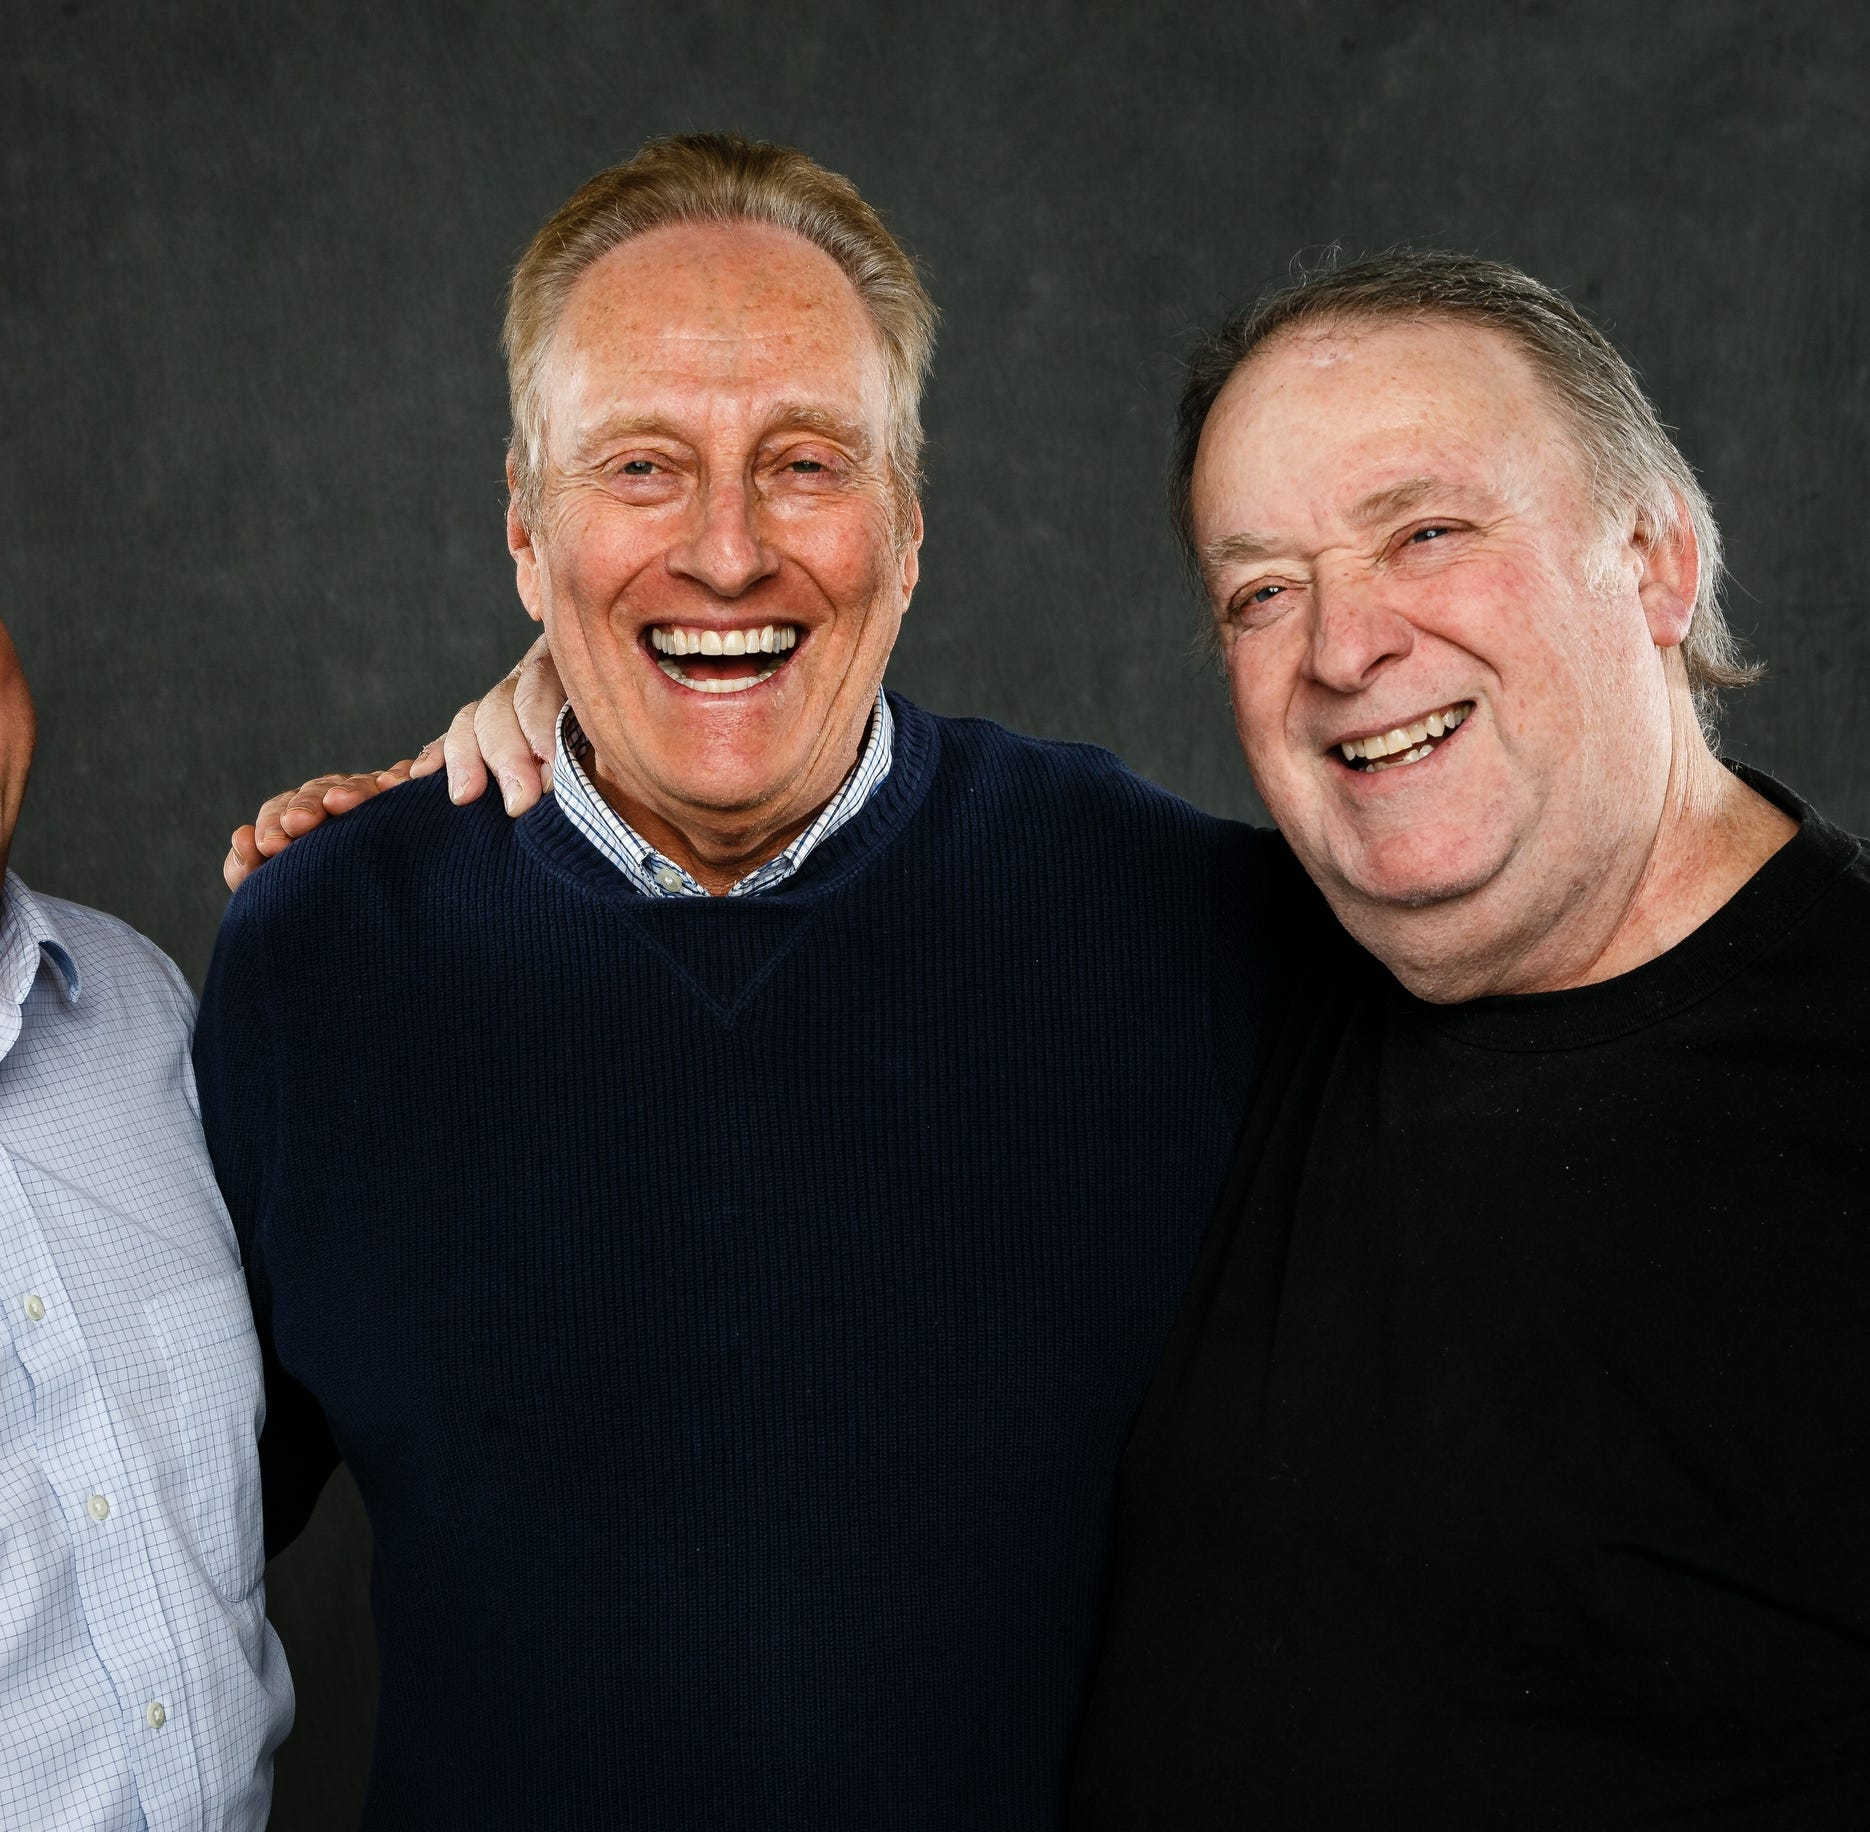 Des Moines radio legends Lou, Larry and the Round Guy reunite for an exclusive podcast